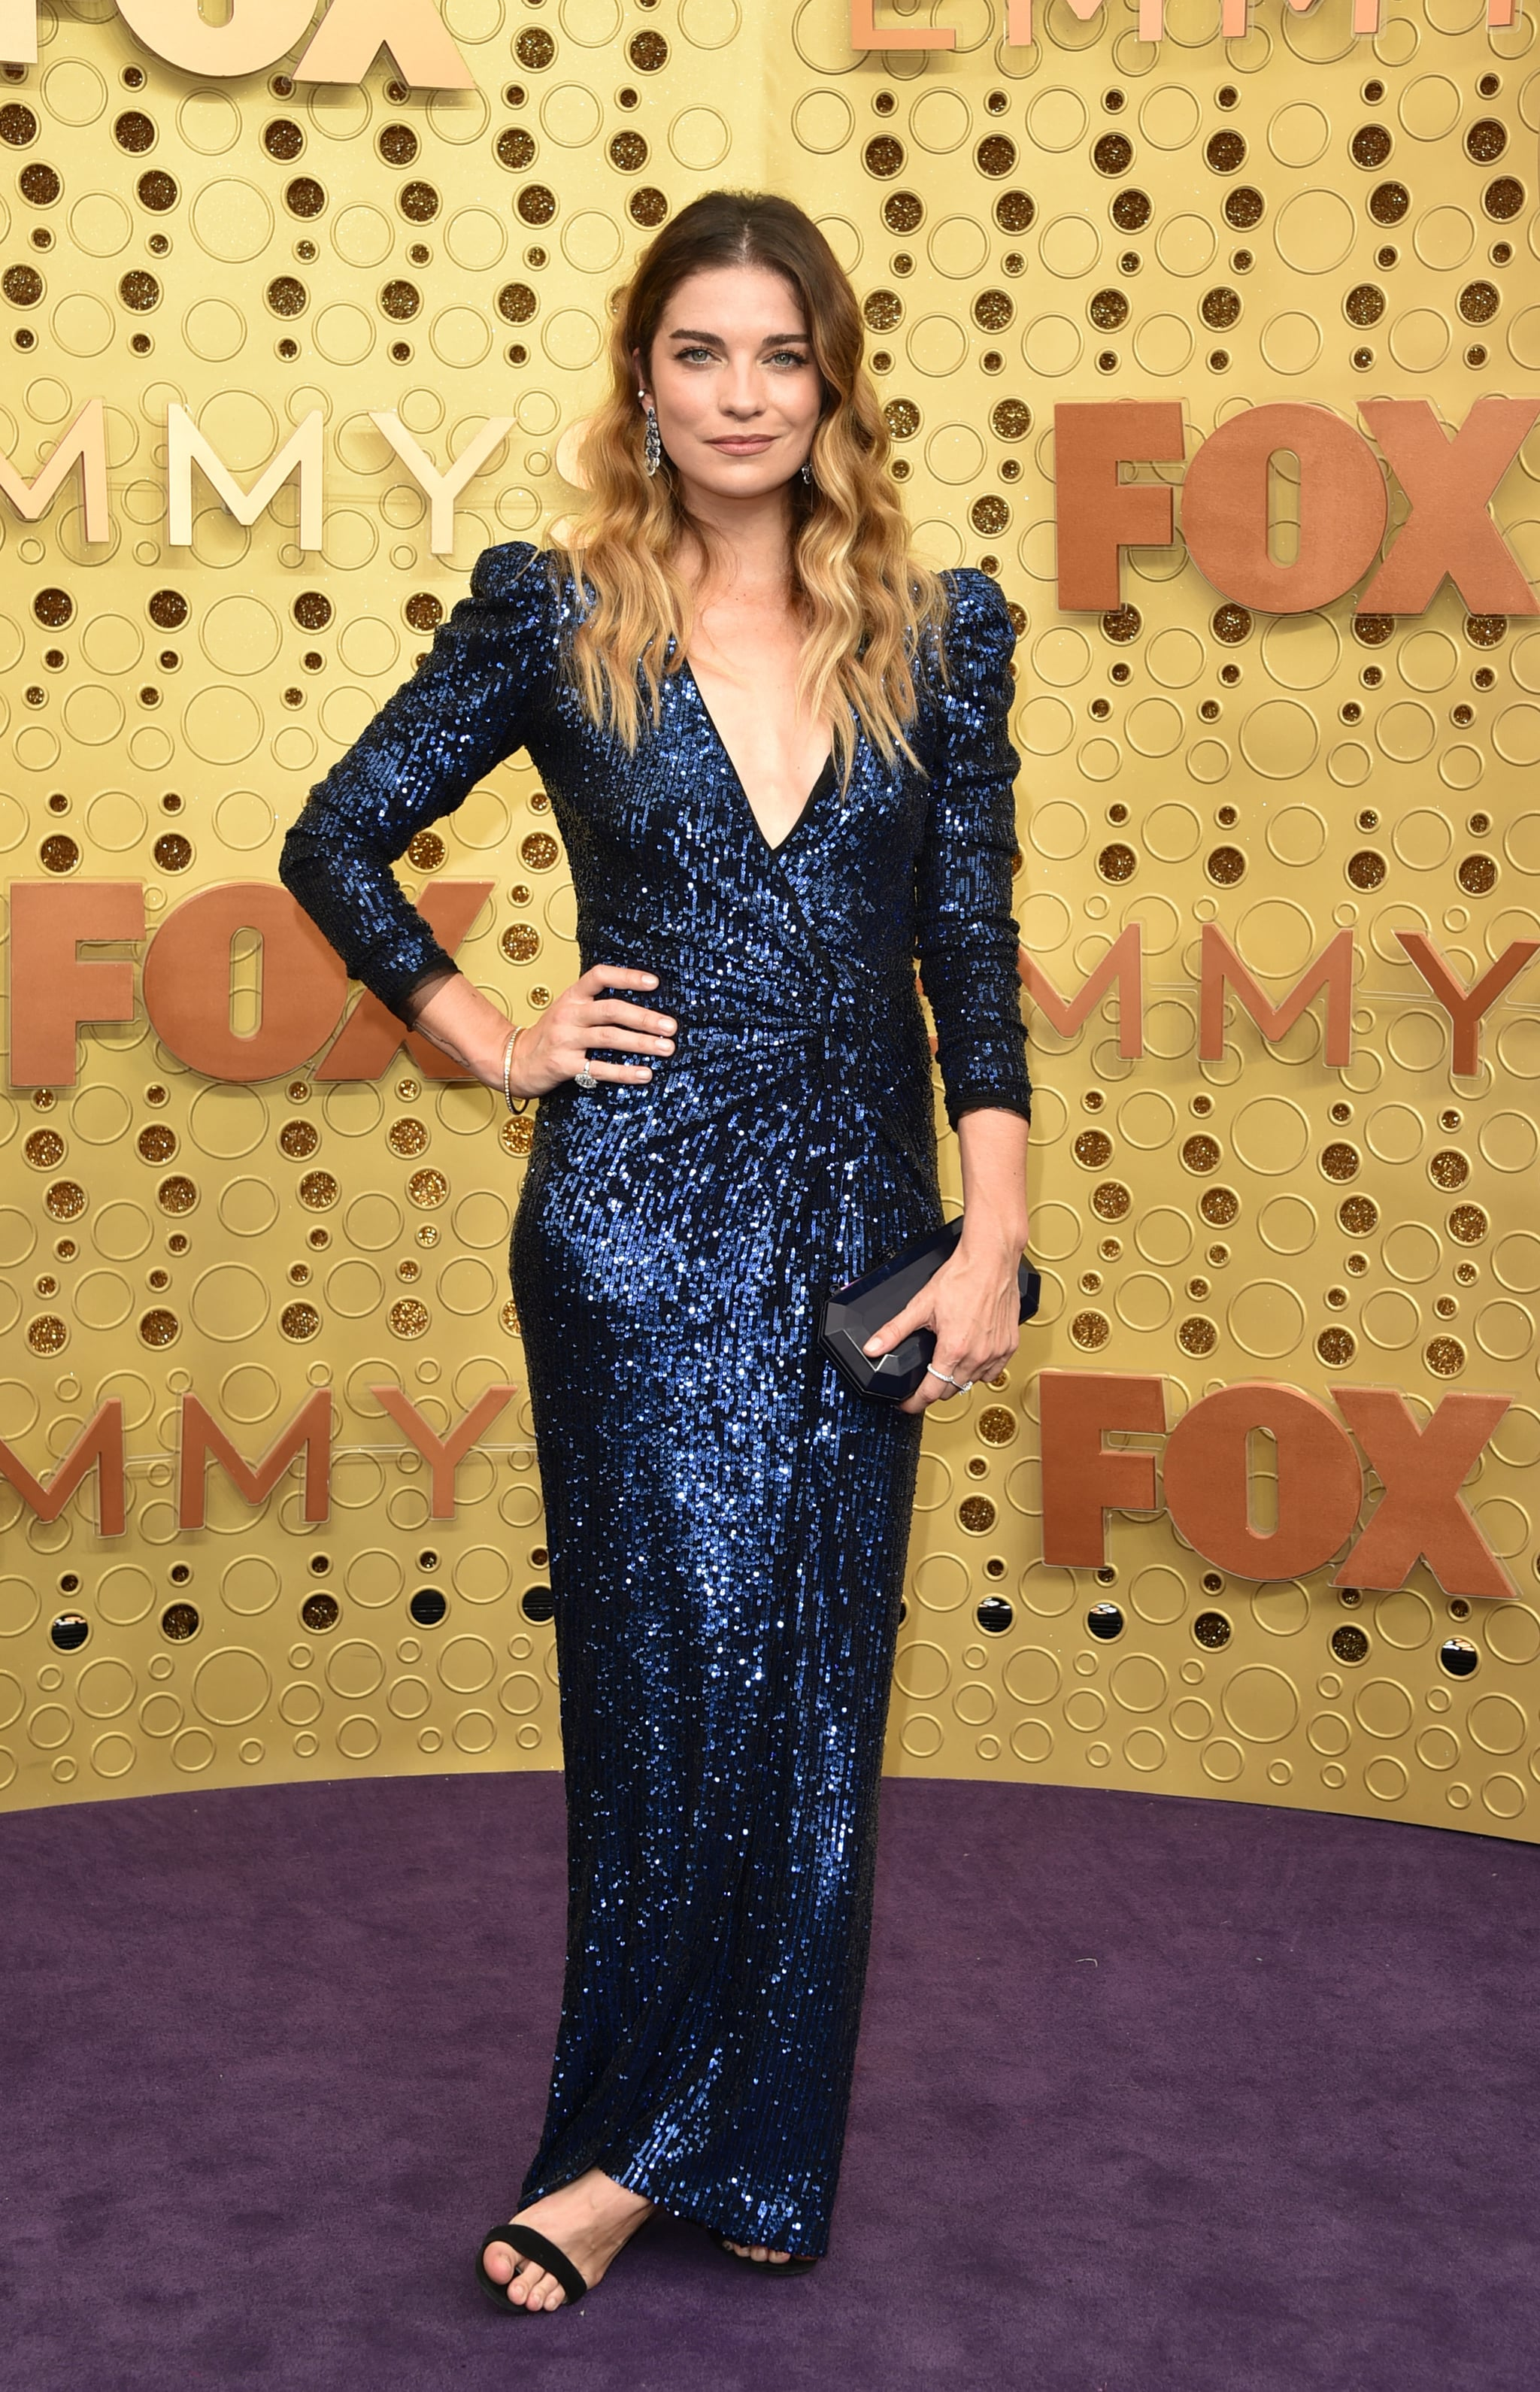 LOS ANGELES, CALIFORNIA - SEPTEMBER 22:  Annie Murphy attends the 71st Emmy Awards at Microsoft Theater on September 22, 2019 in Los Angeles, California. (Photo by John Shearer/Getty Images)